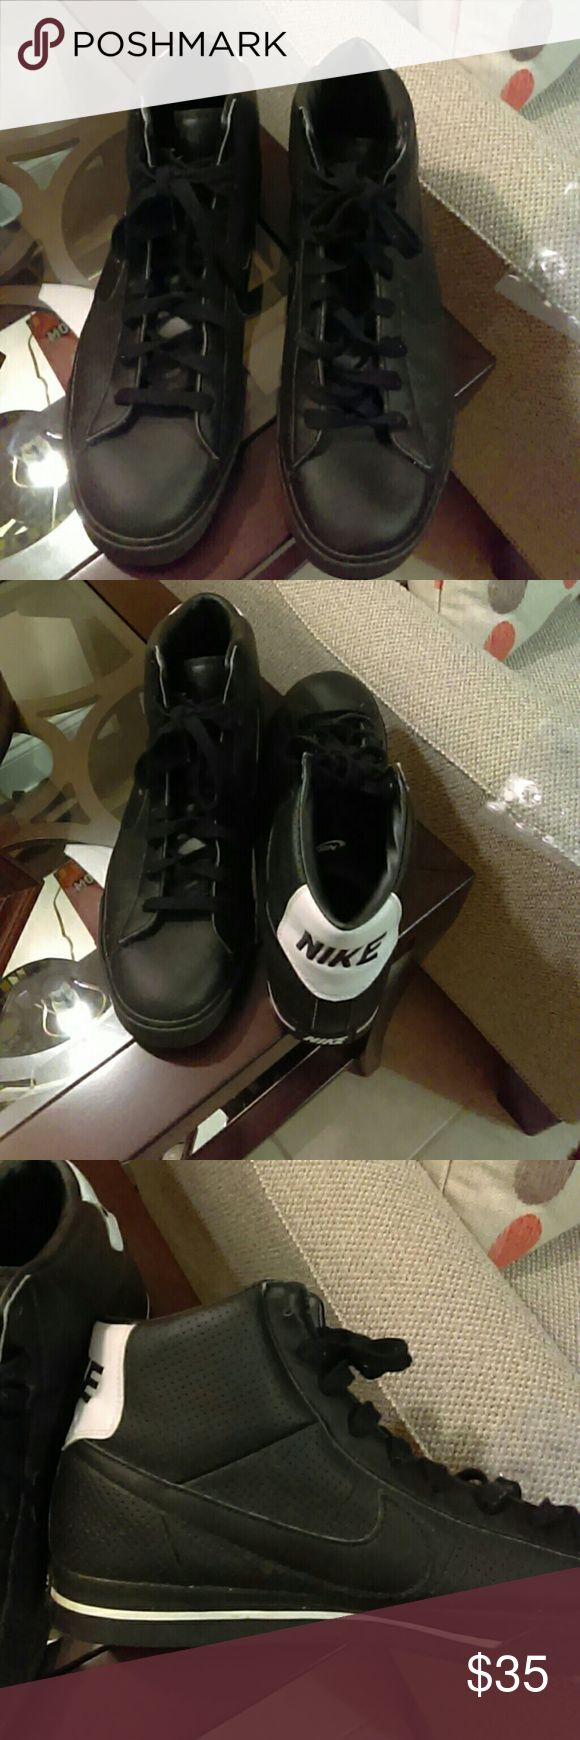 Nike Mid Top Sneaker Very good condition durable synthetic upper Nike Shoes Athletic Shoes